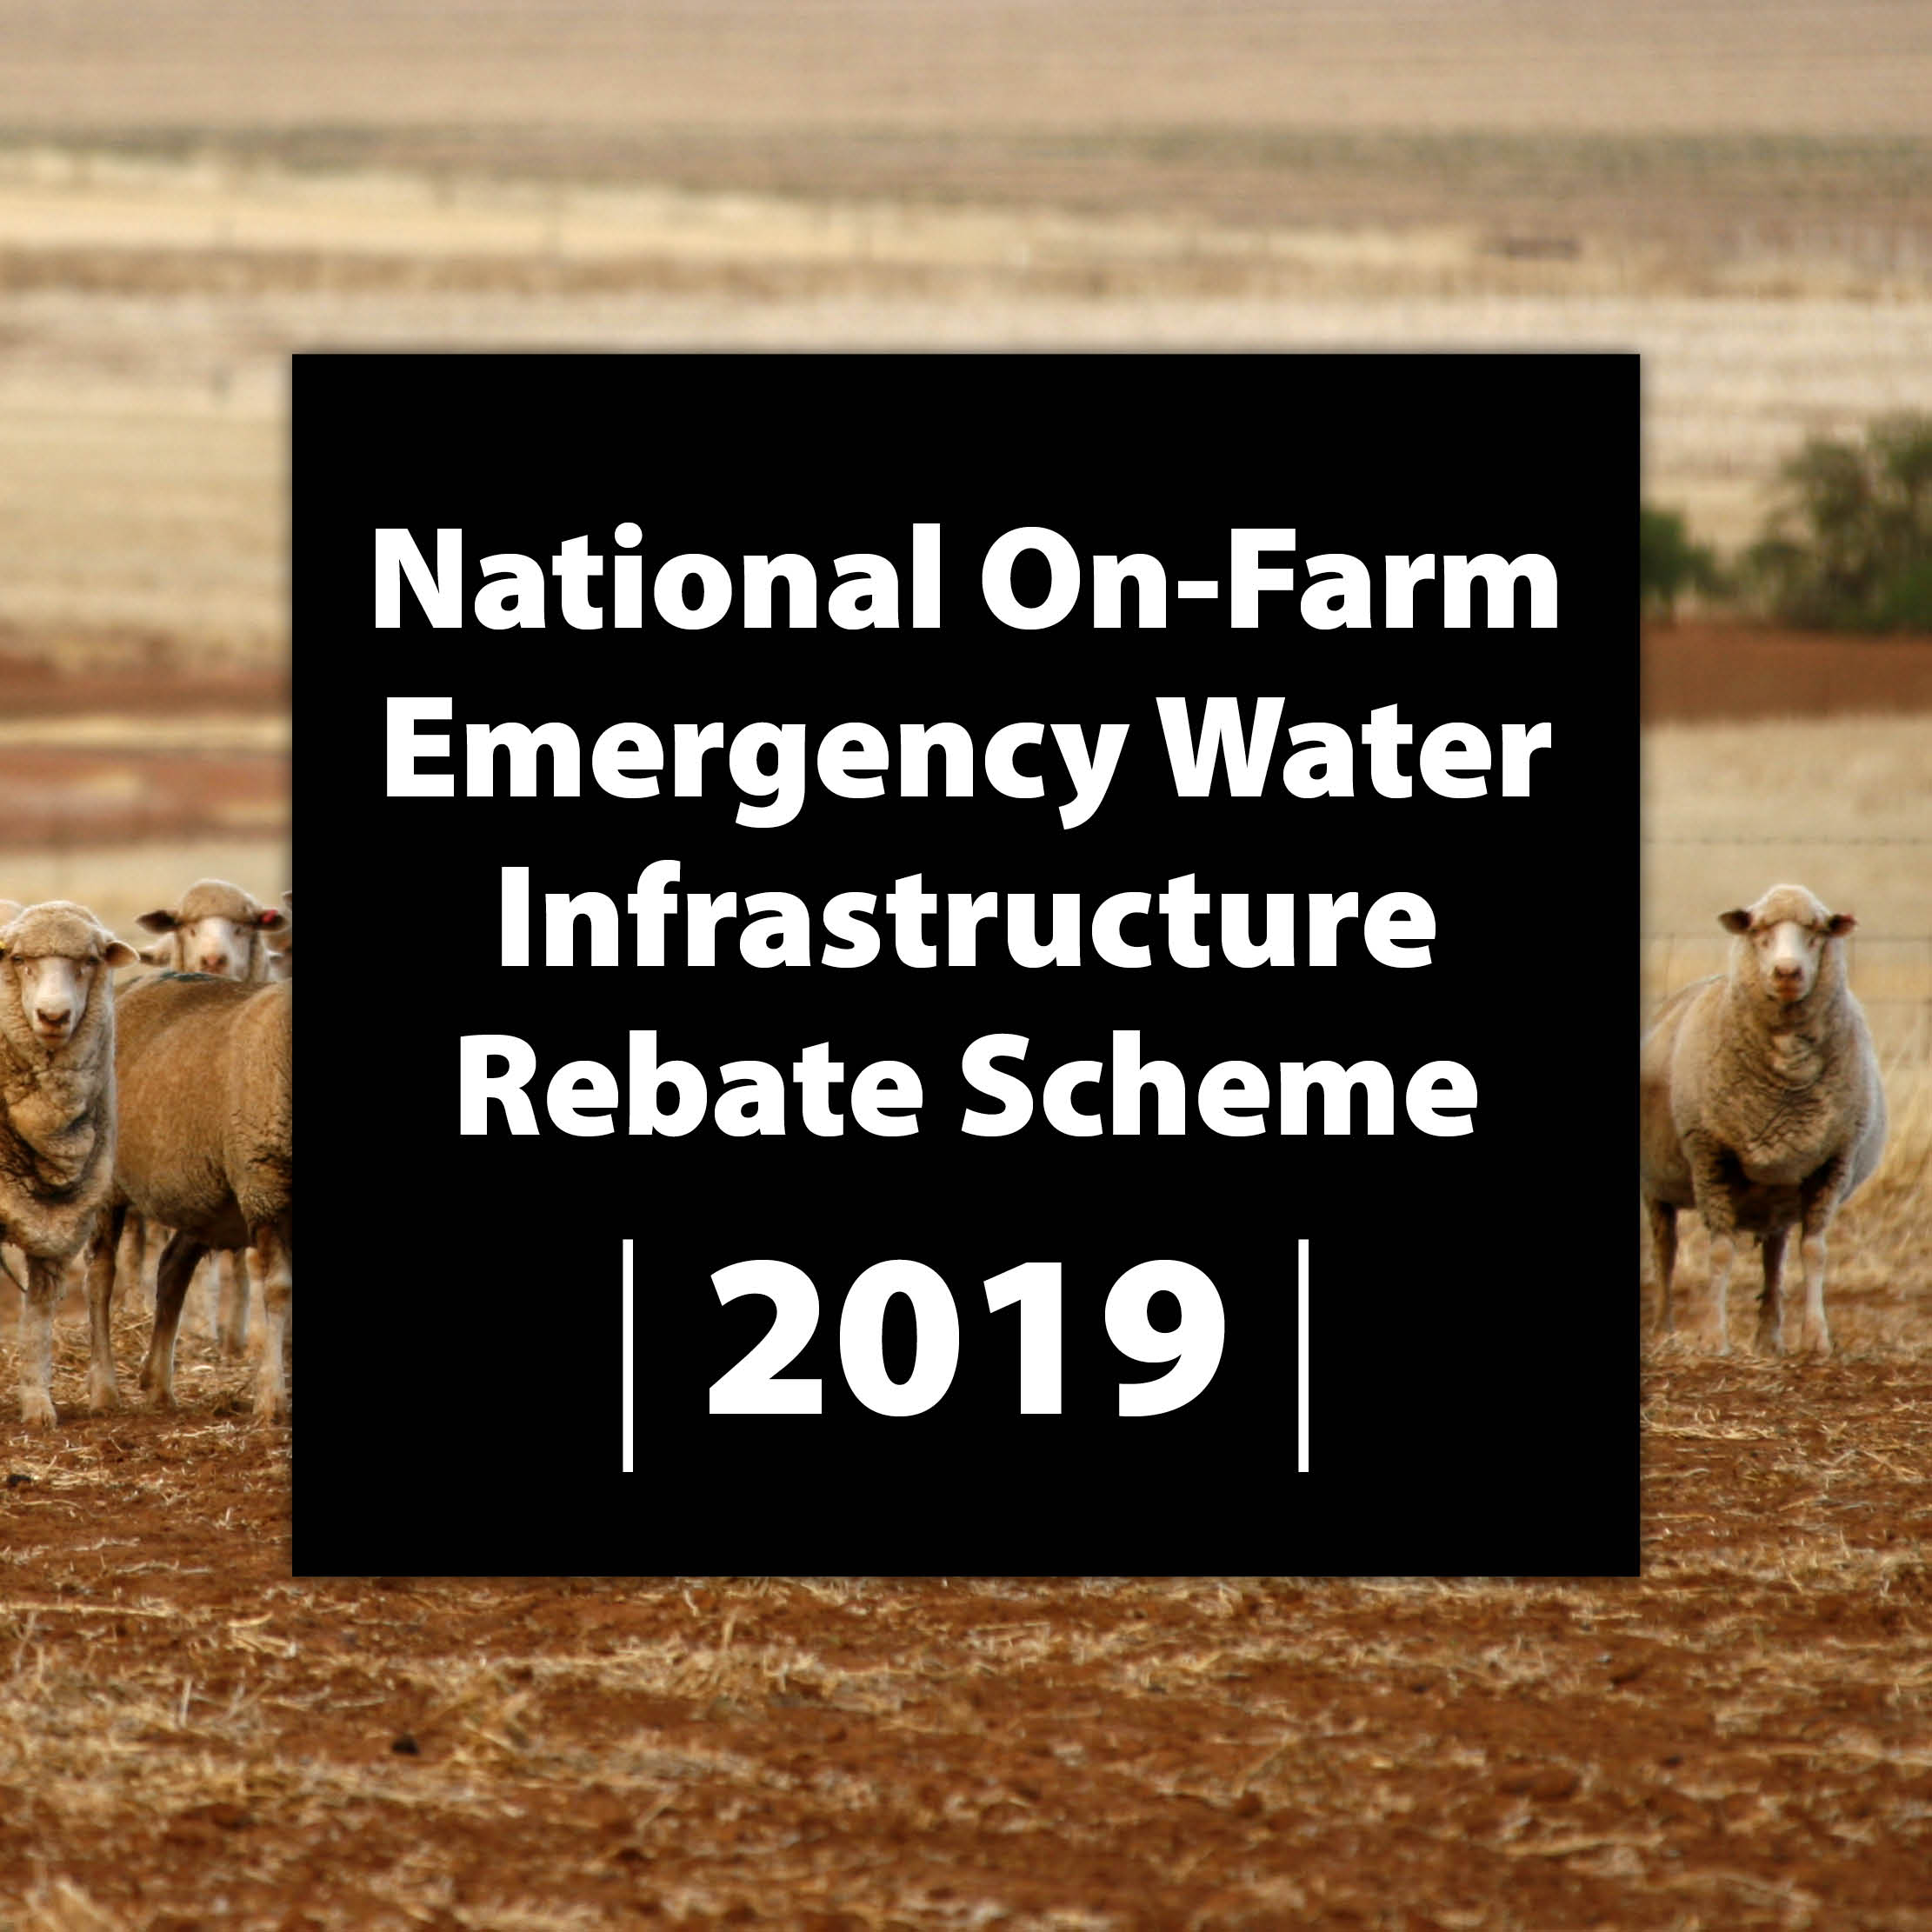 National On-Farm Emergency Water Infrastructure Rebate Scheme 2020